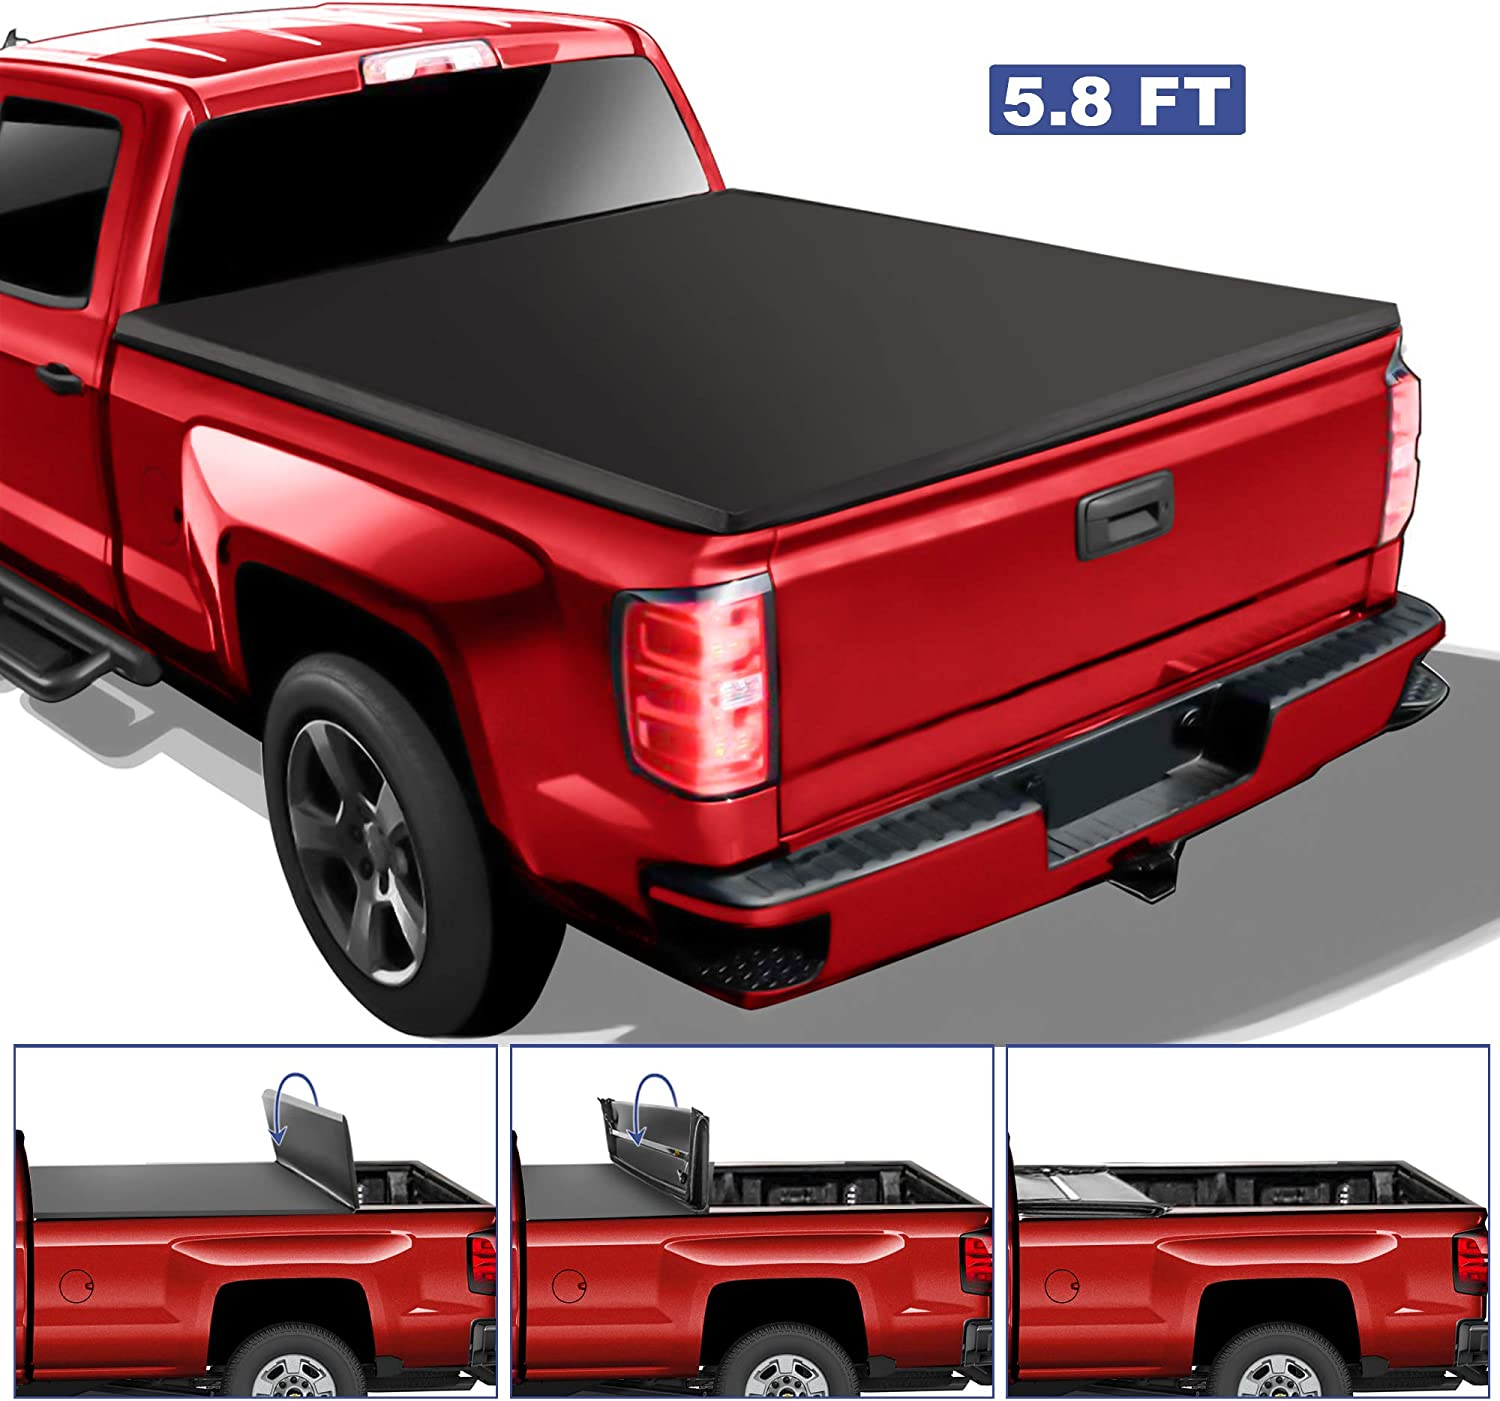 fits 14-18 5.8 Bed 53109 Made in the USA Gator ETX Soft Roll Up Truck Bed Tonneau Cover 2019 GMC Sierra Limited//Chevy Silverado 1500 Legacy